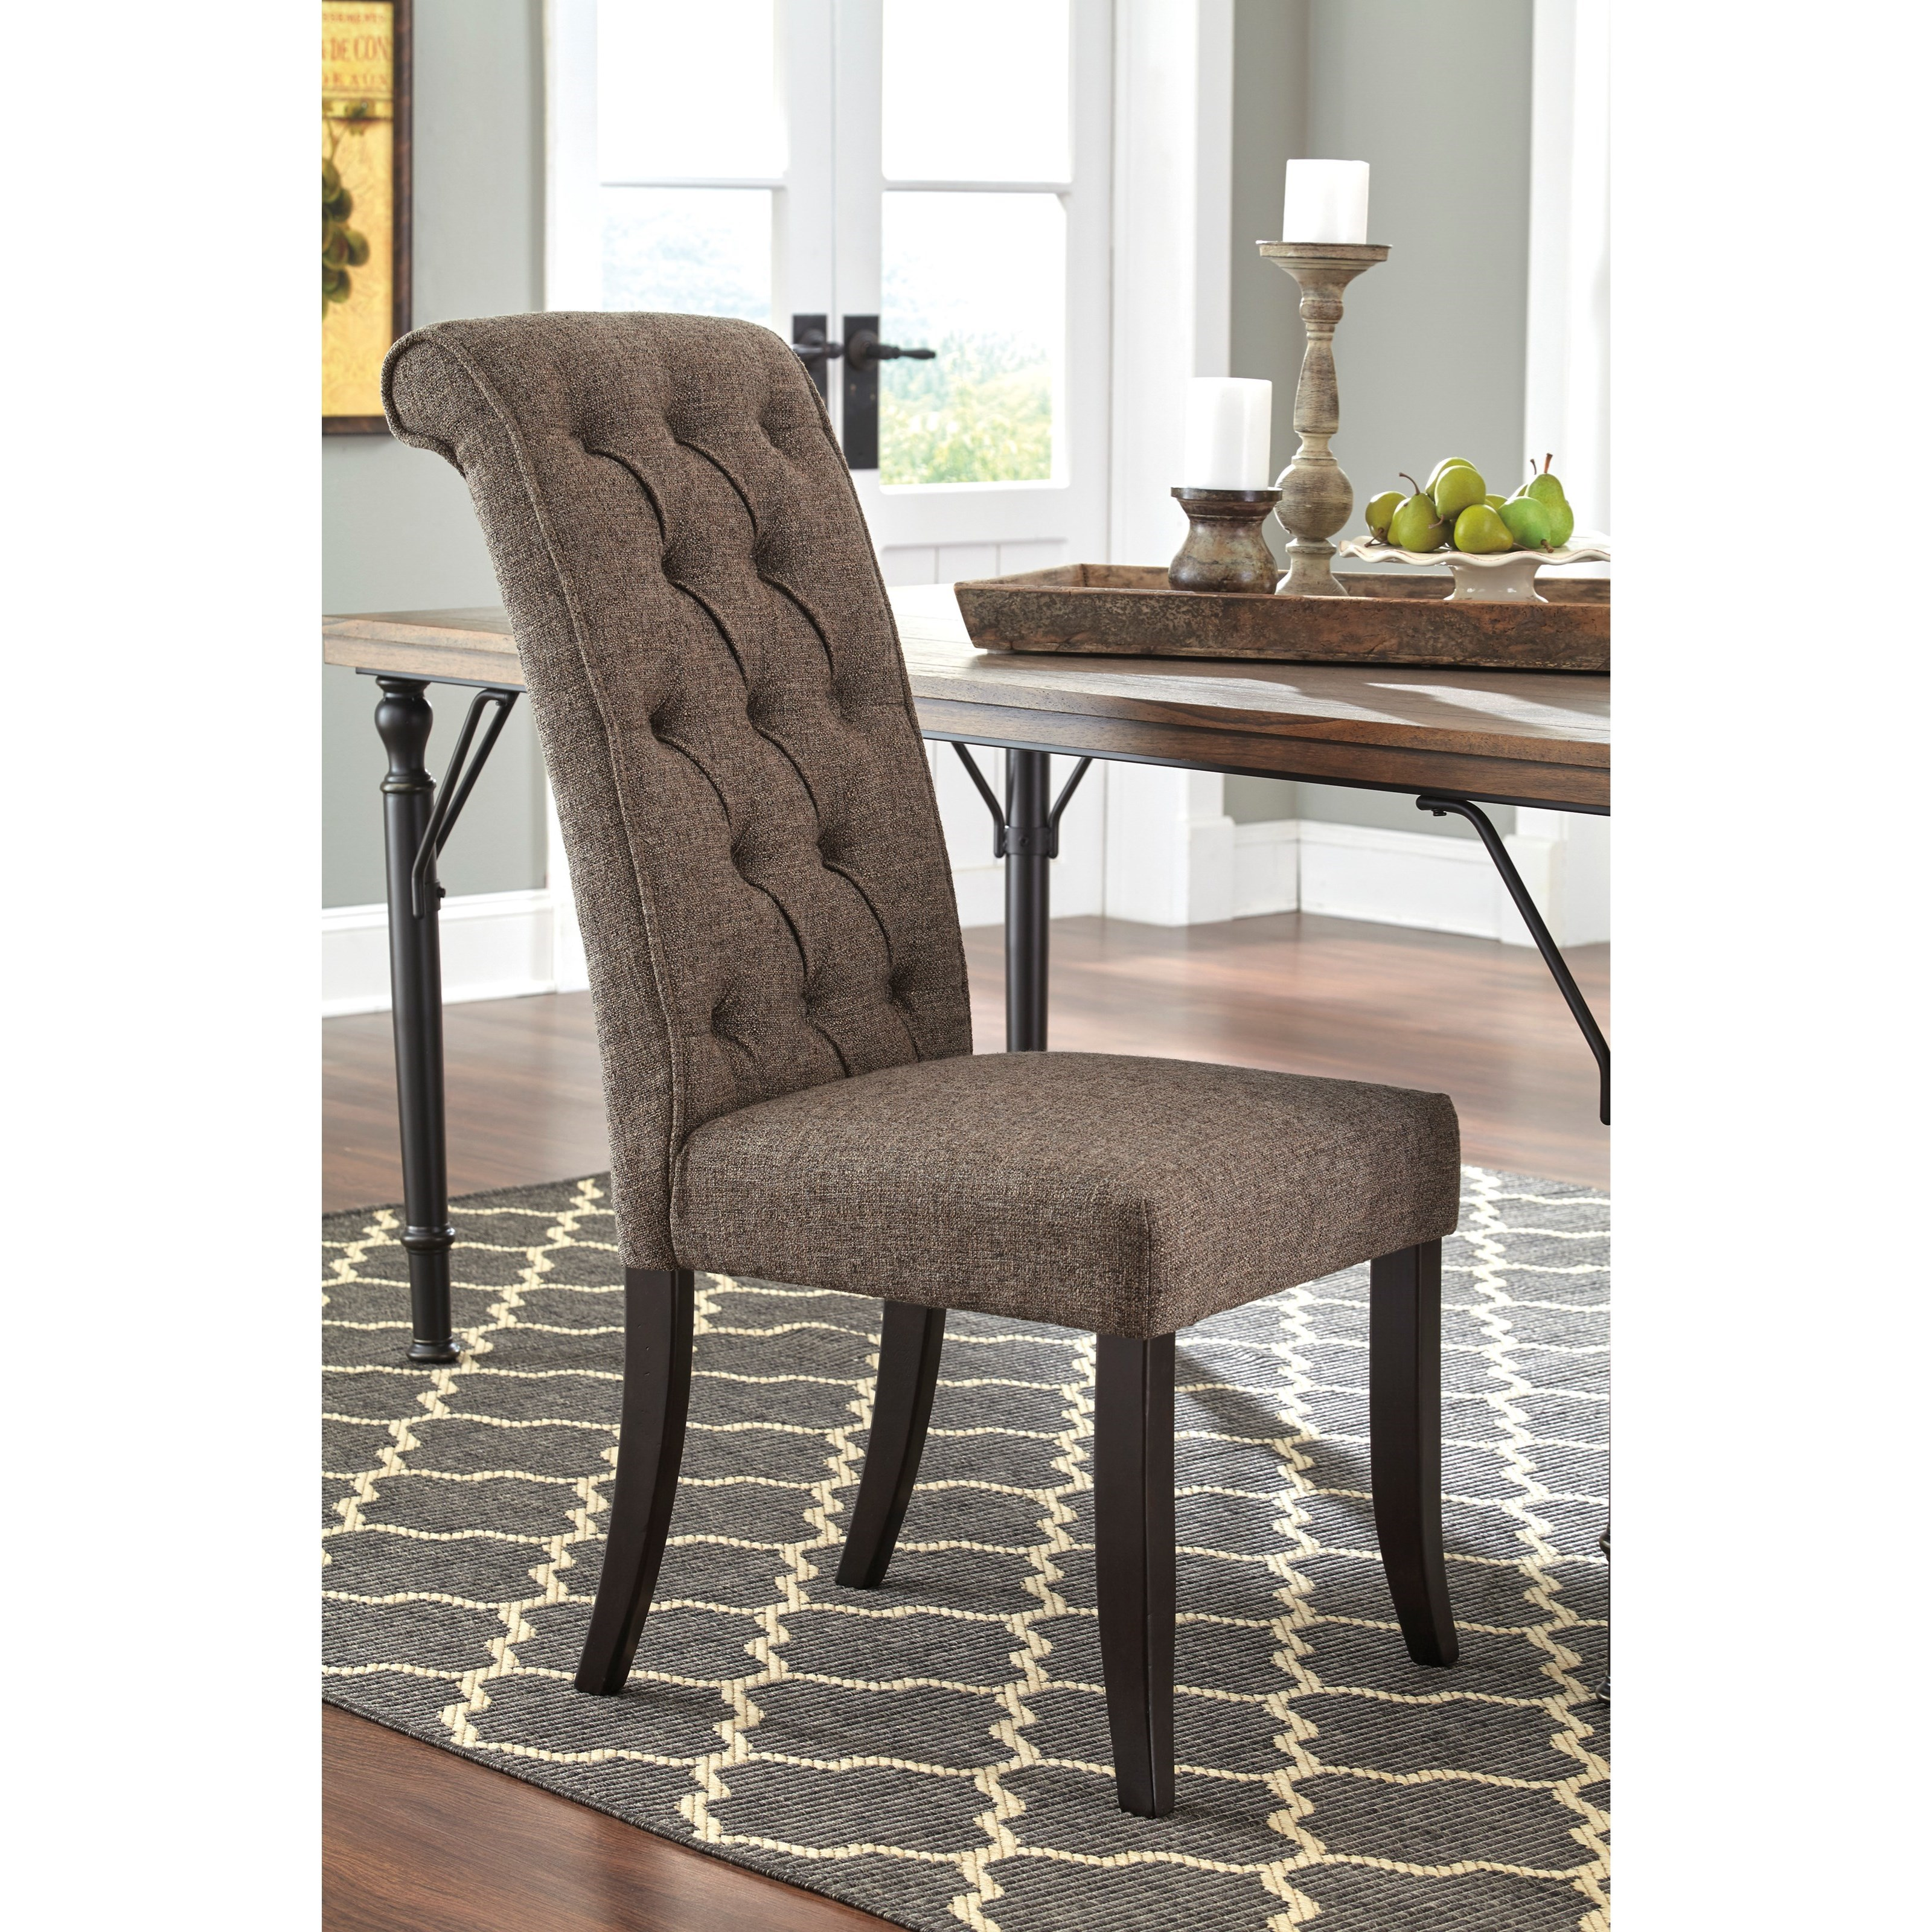 Signature Design By Ashley Tripton D530 02 Dining